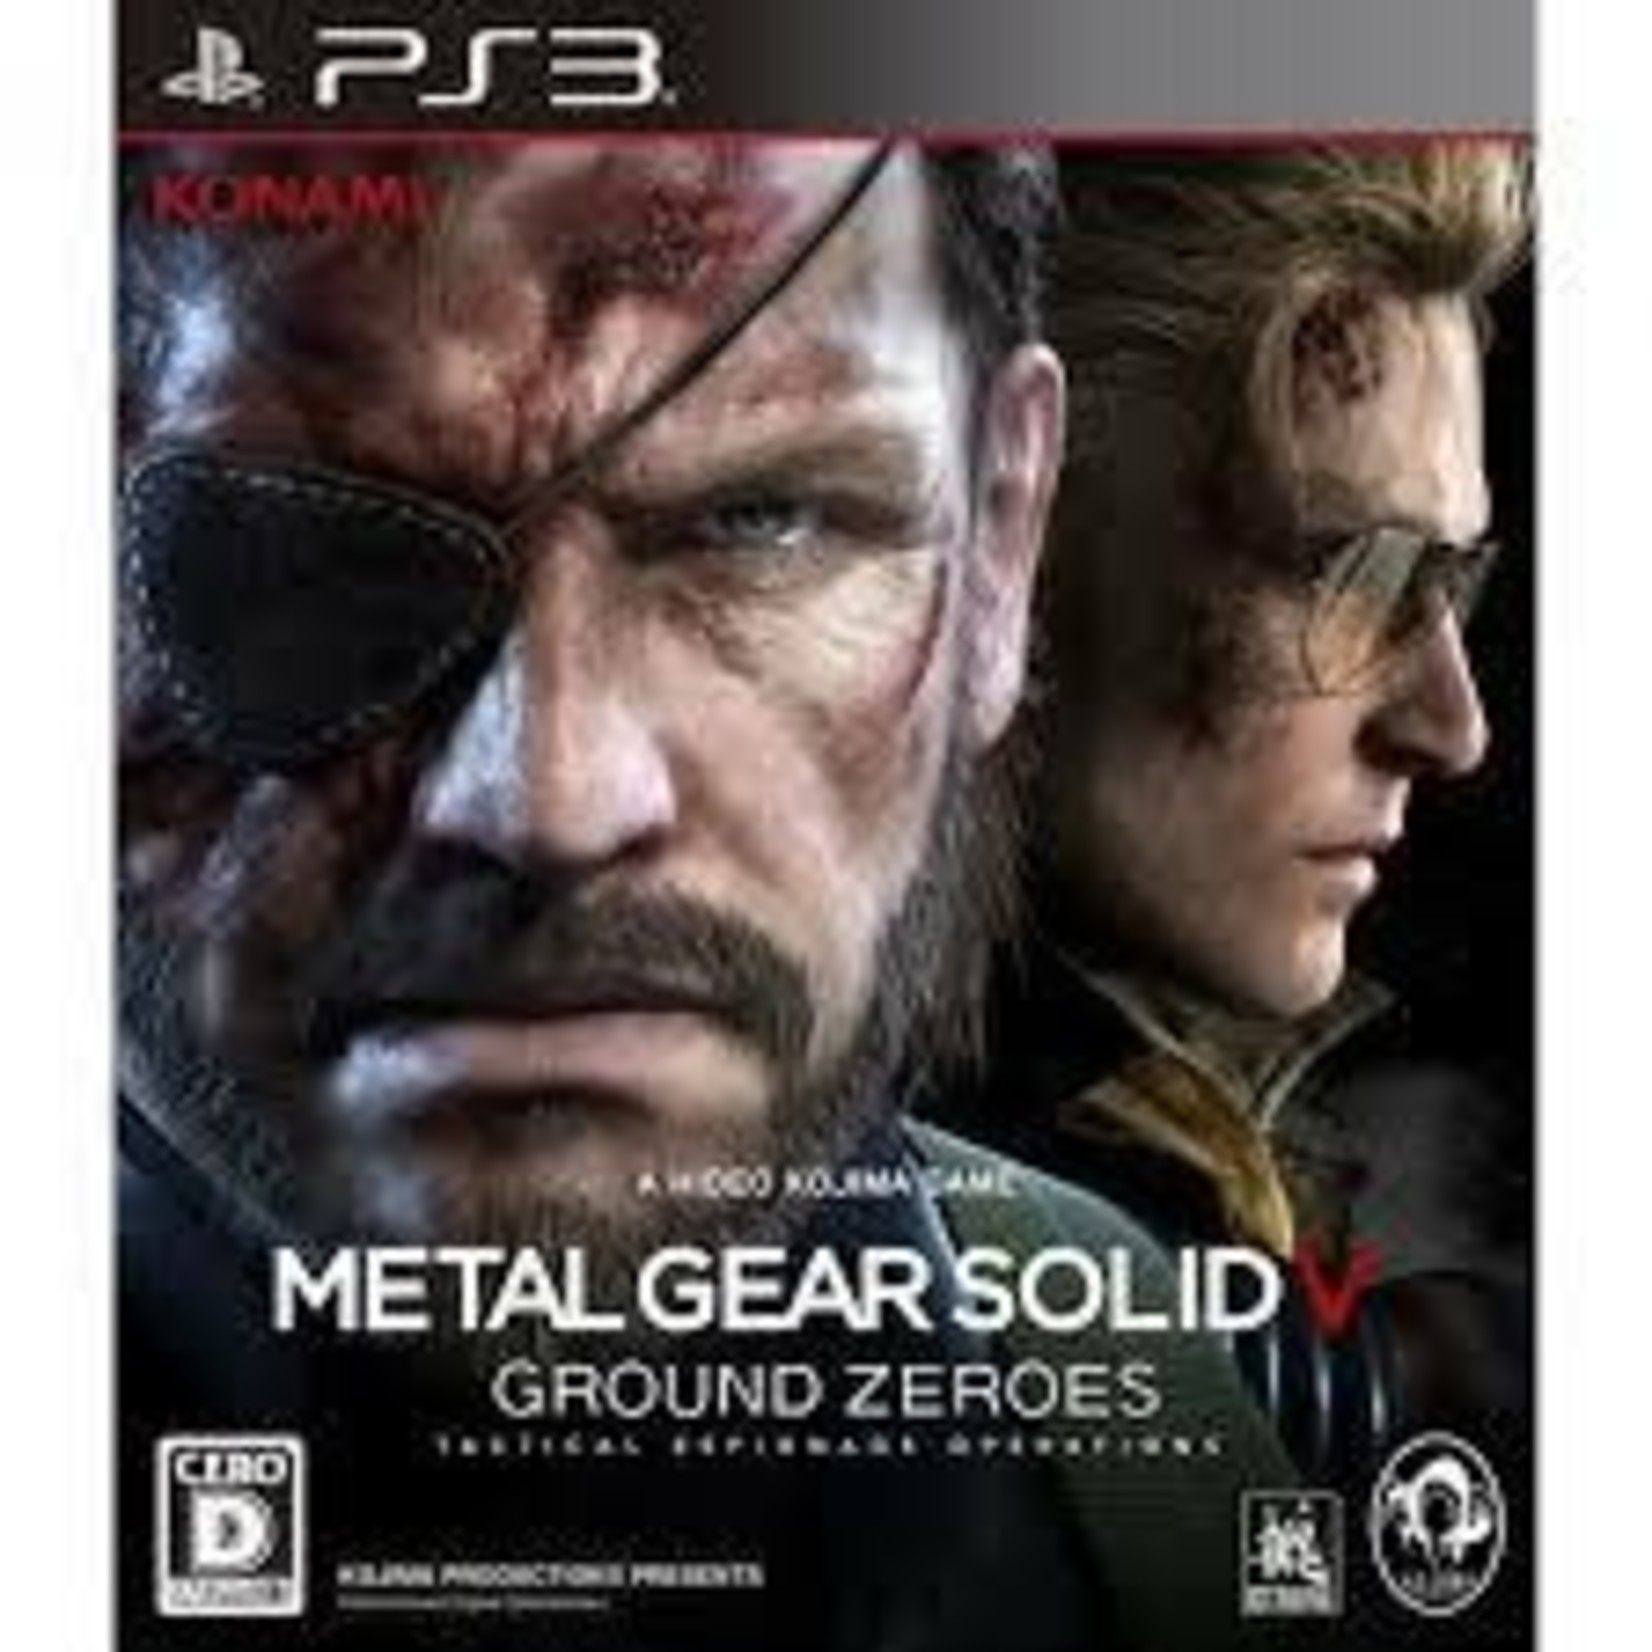 IMPORT-PS3U-Metal Gear Solid V: Ground Zeroes